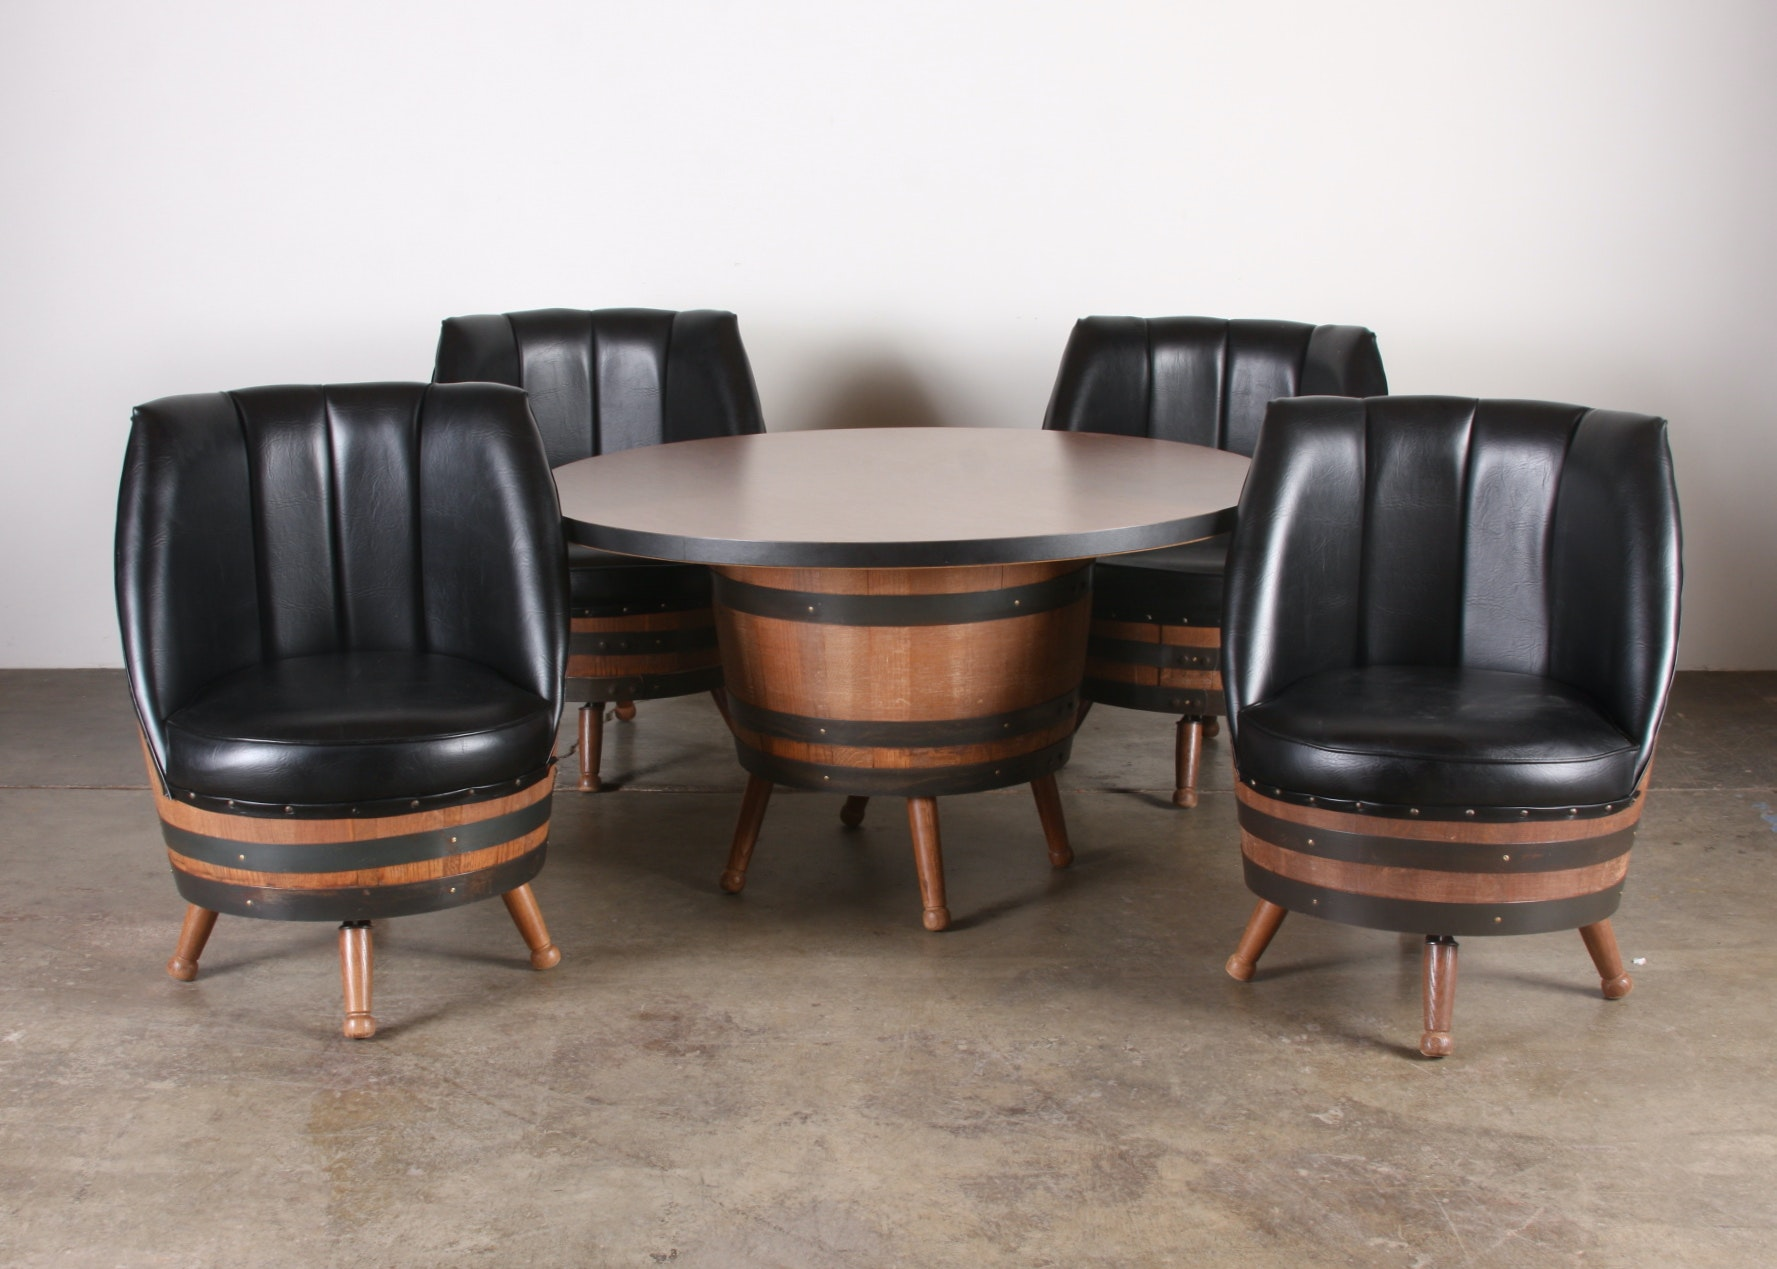 1960s 70s vintage whiskey barrel dining set with table  : IMG7998JPGixlibrb 11 from www.ebth.com size 880 x 906 jpeg 101kB